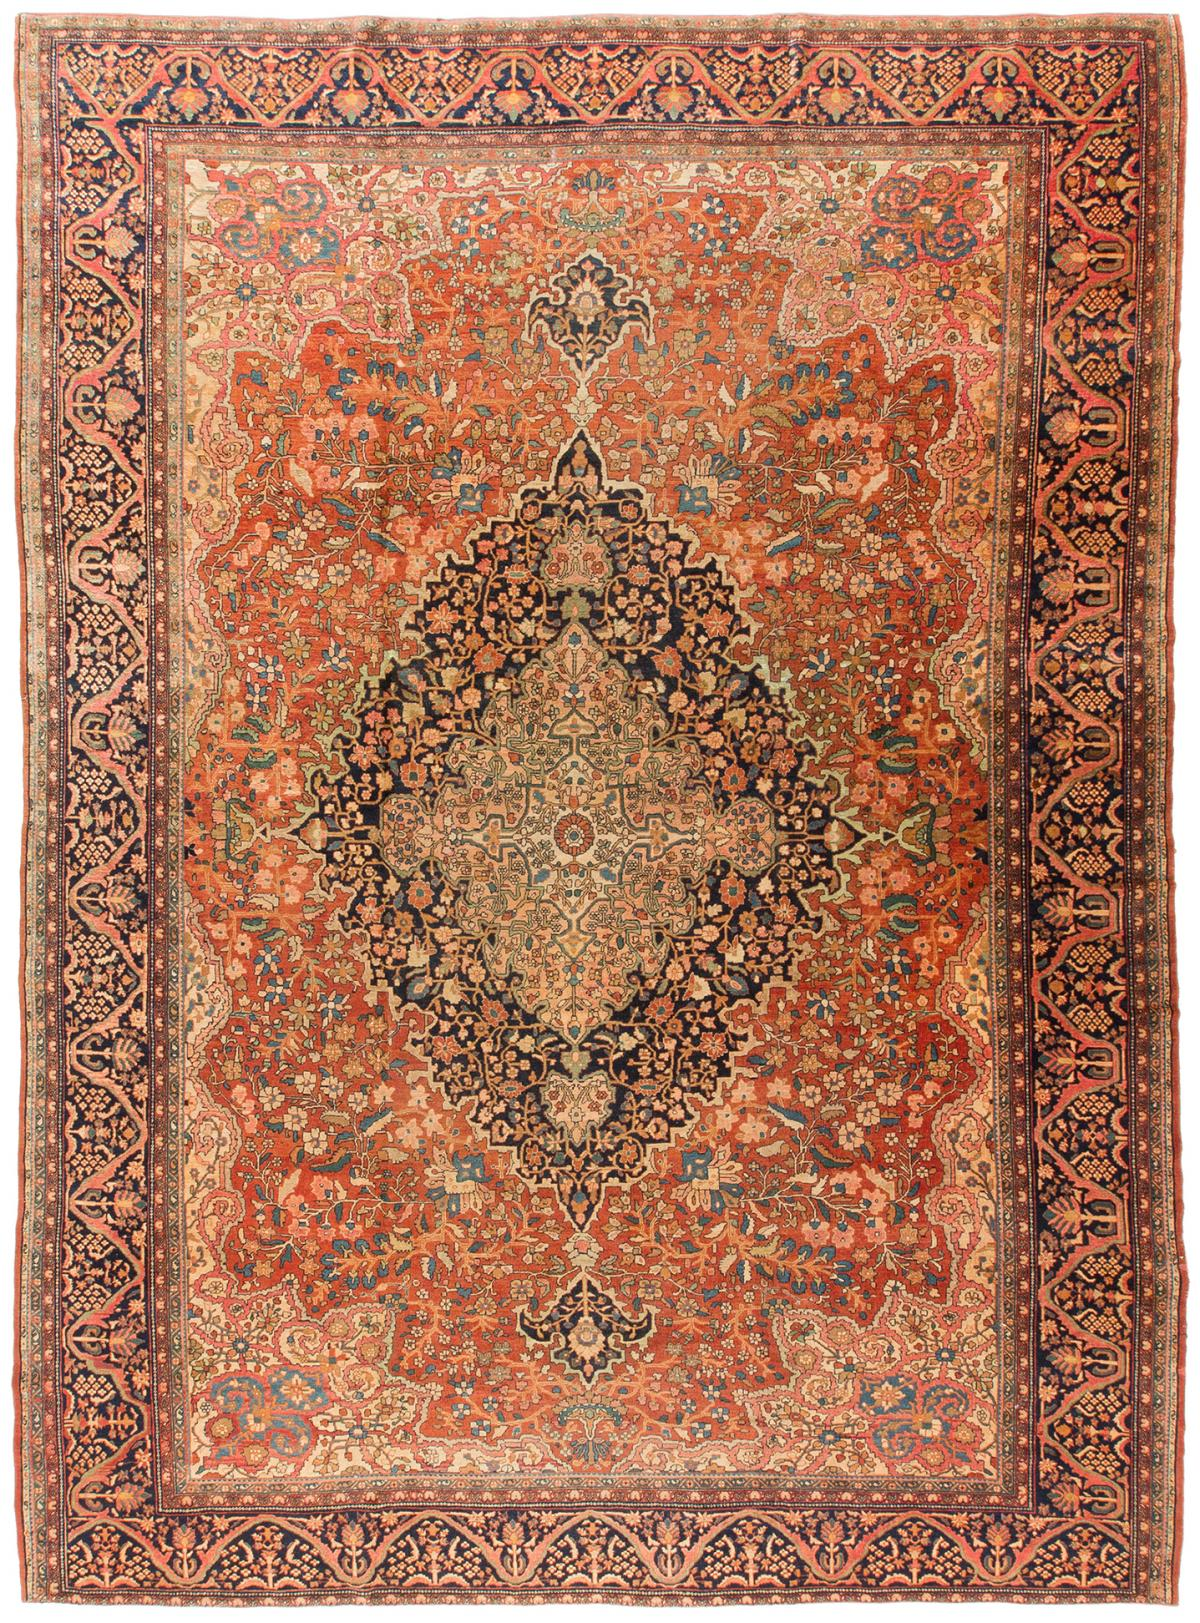 Rug Ant174023 Farahan Sarouk Antique Area Rugs By Safavieh